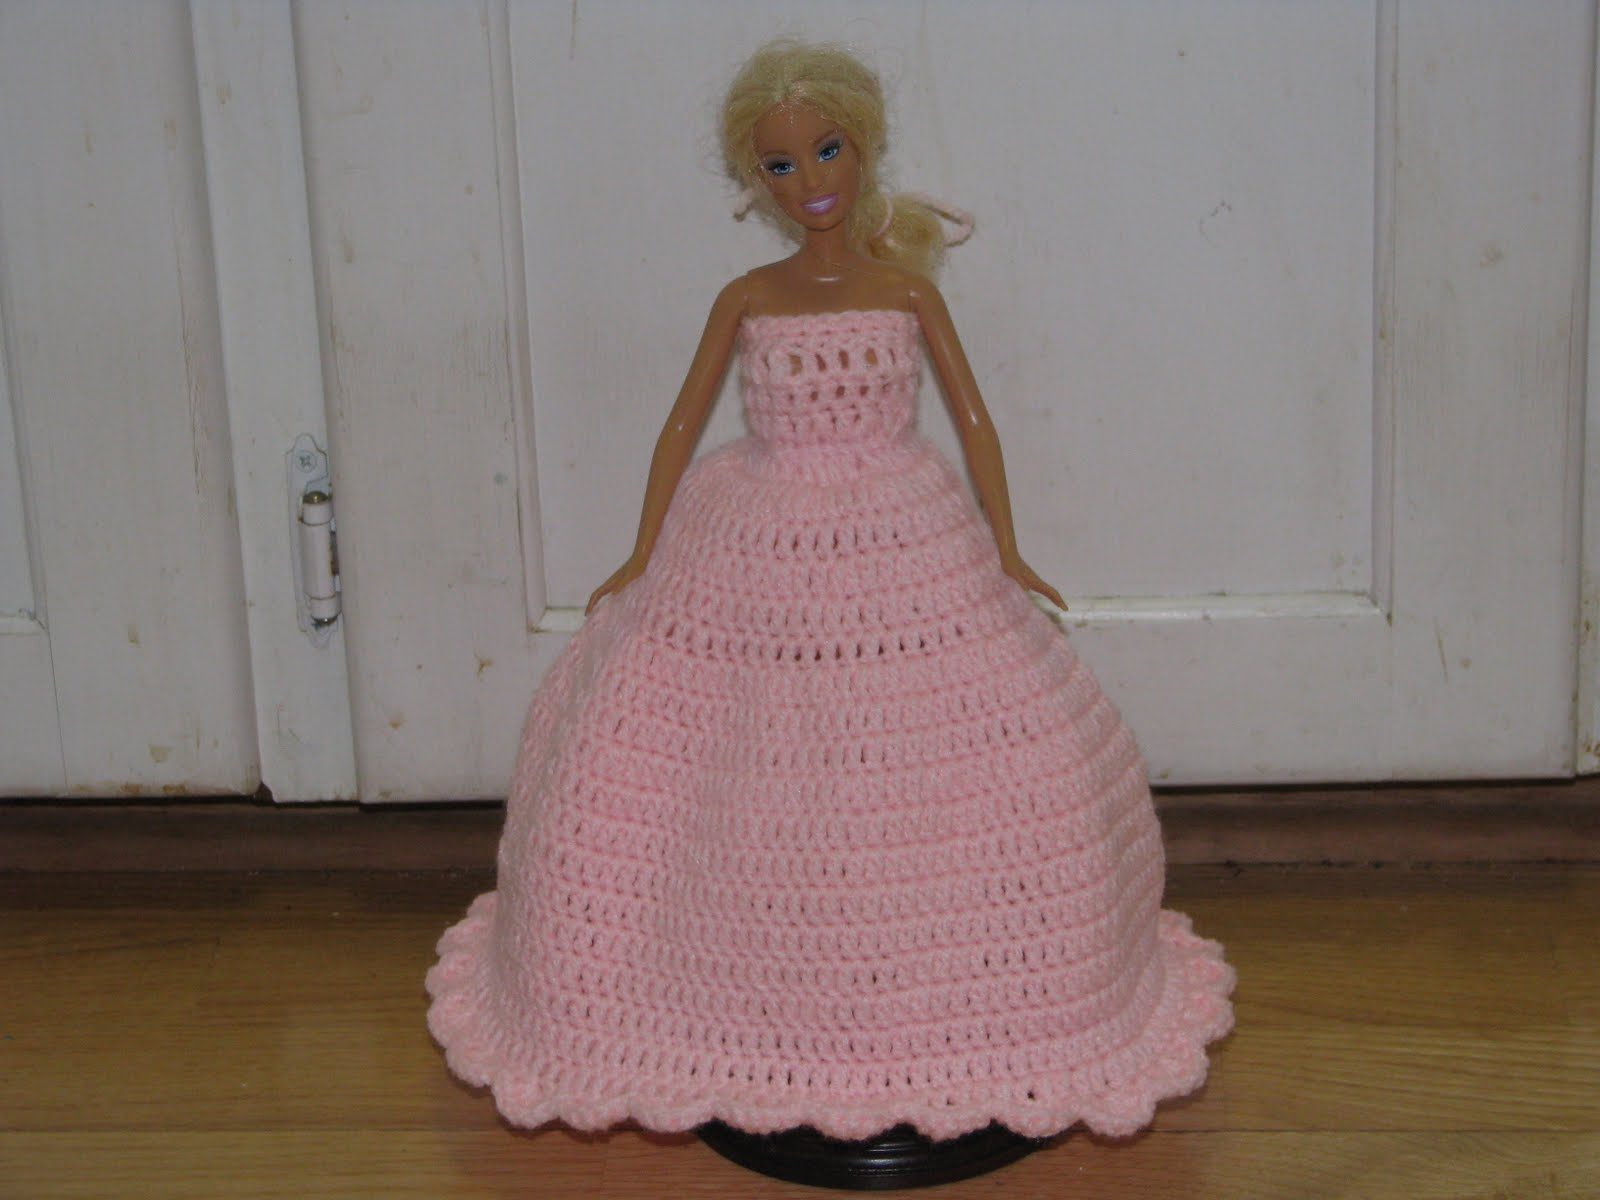 BARBIE DOLL GOWN FREE CROCHET PATTERN – Crochet Patterns